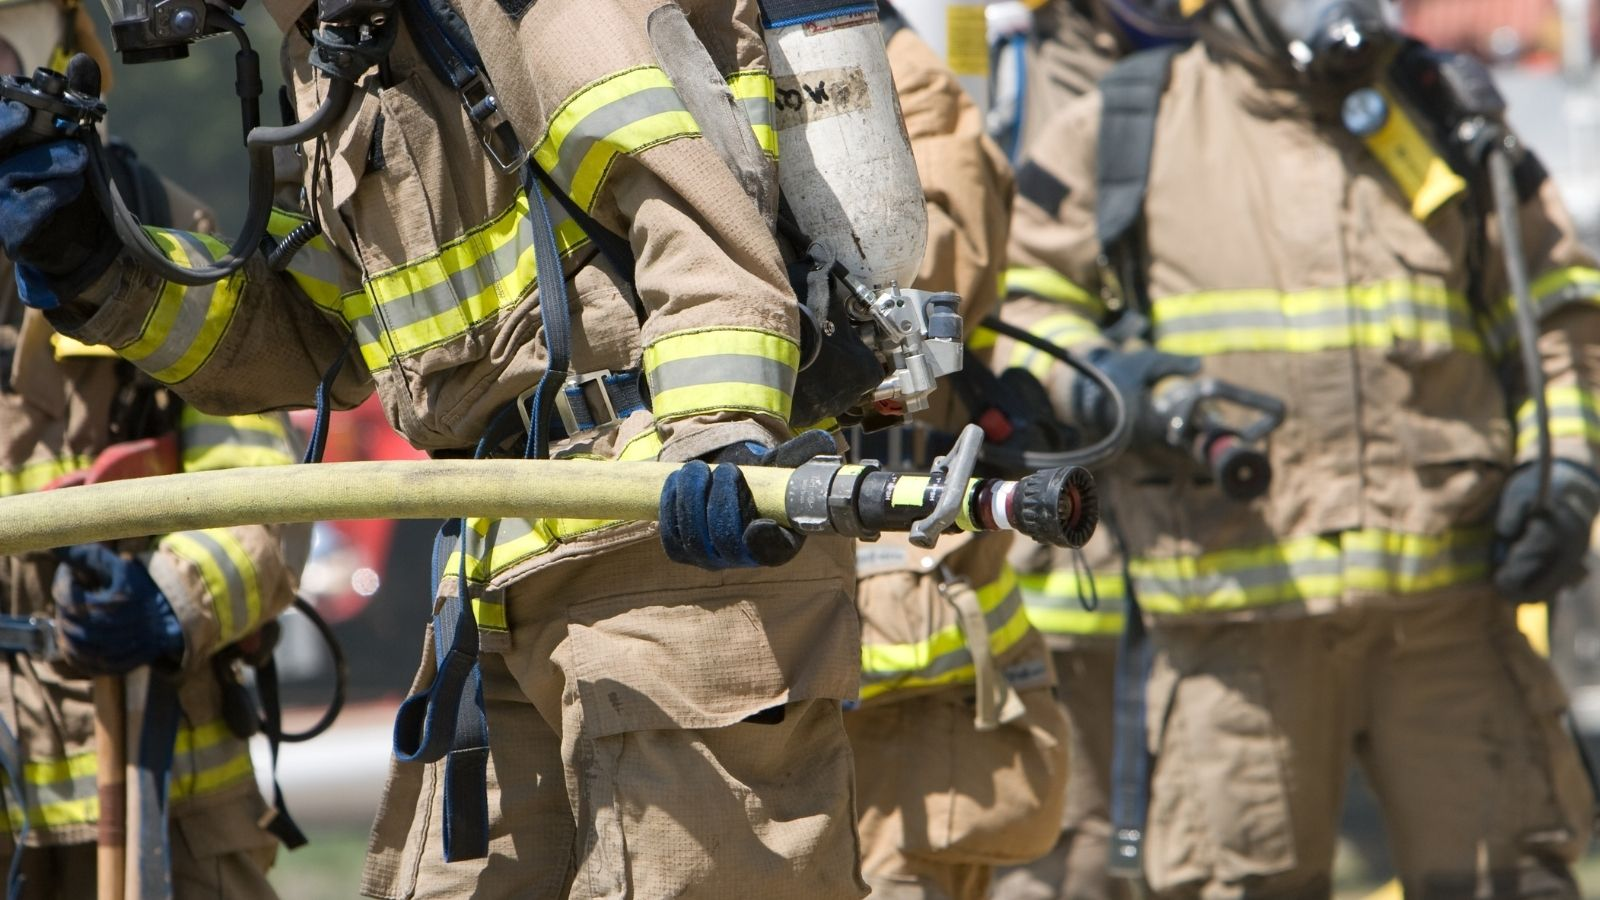 Firefighters in gear holding a hose